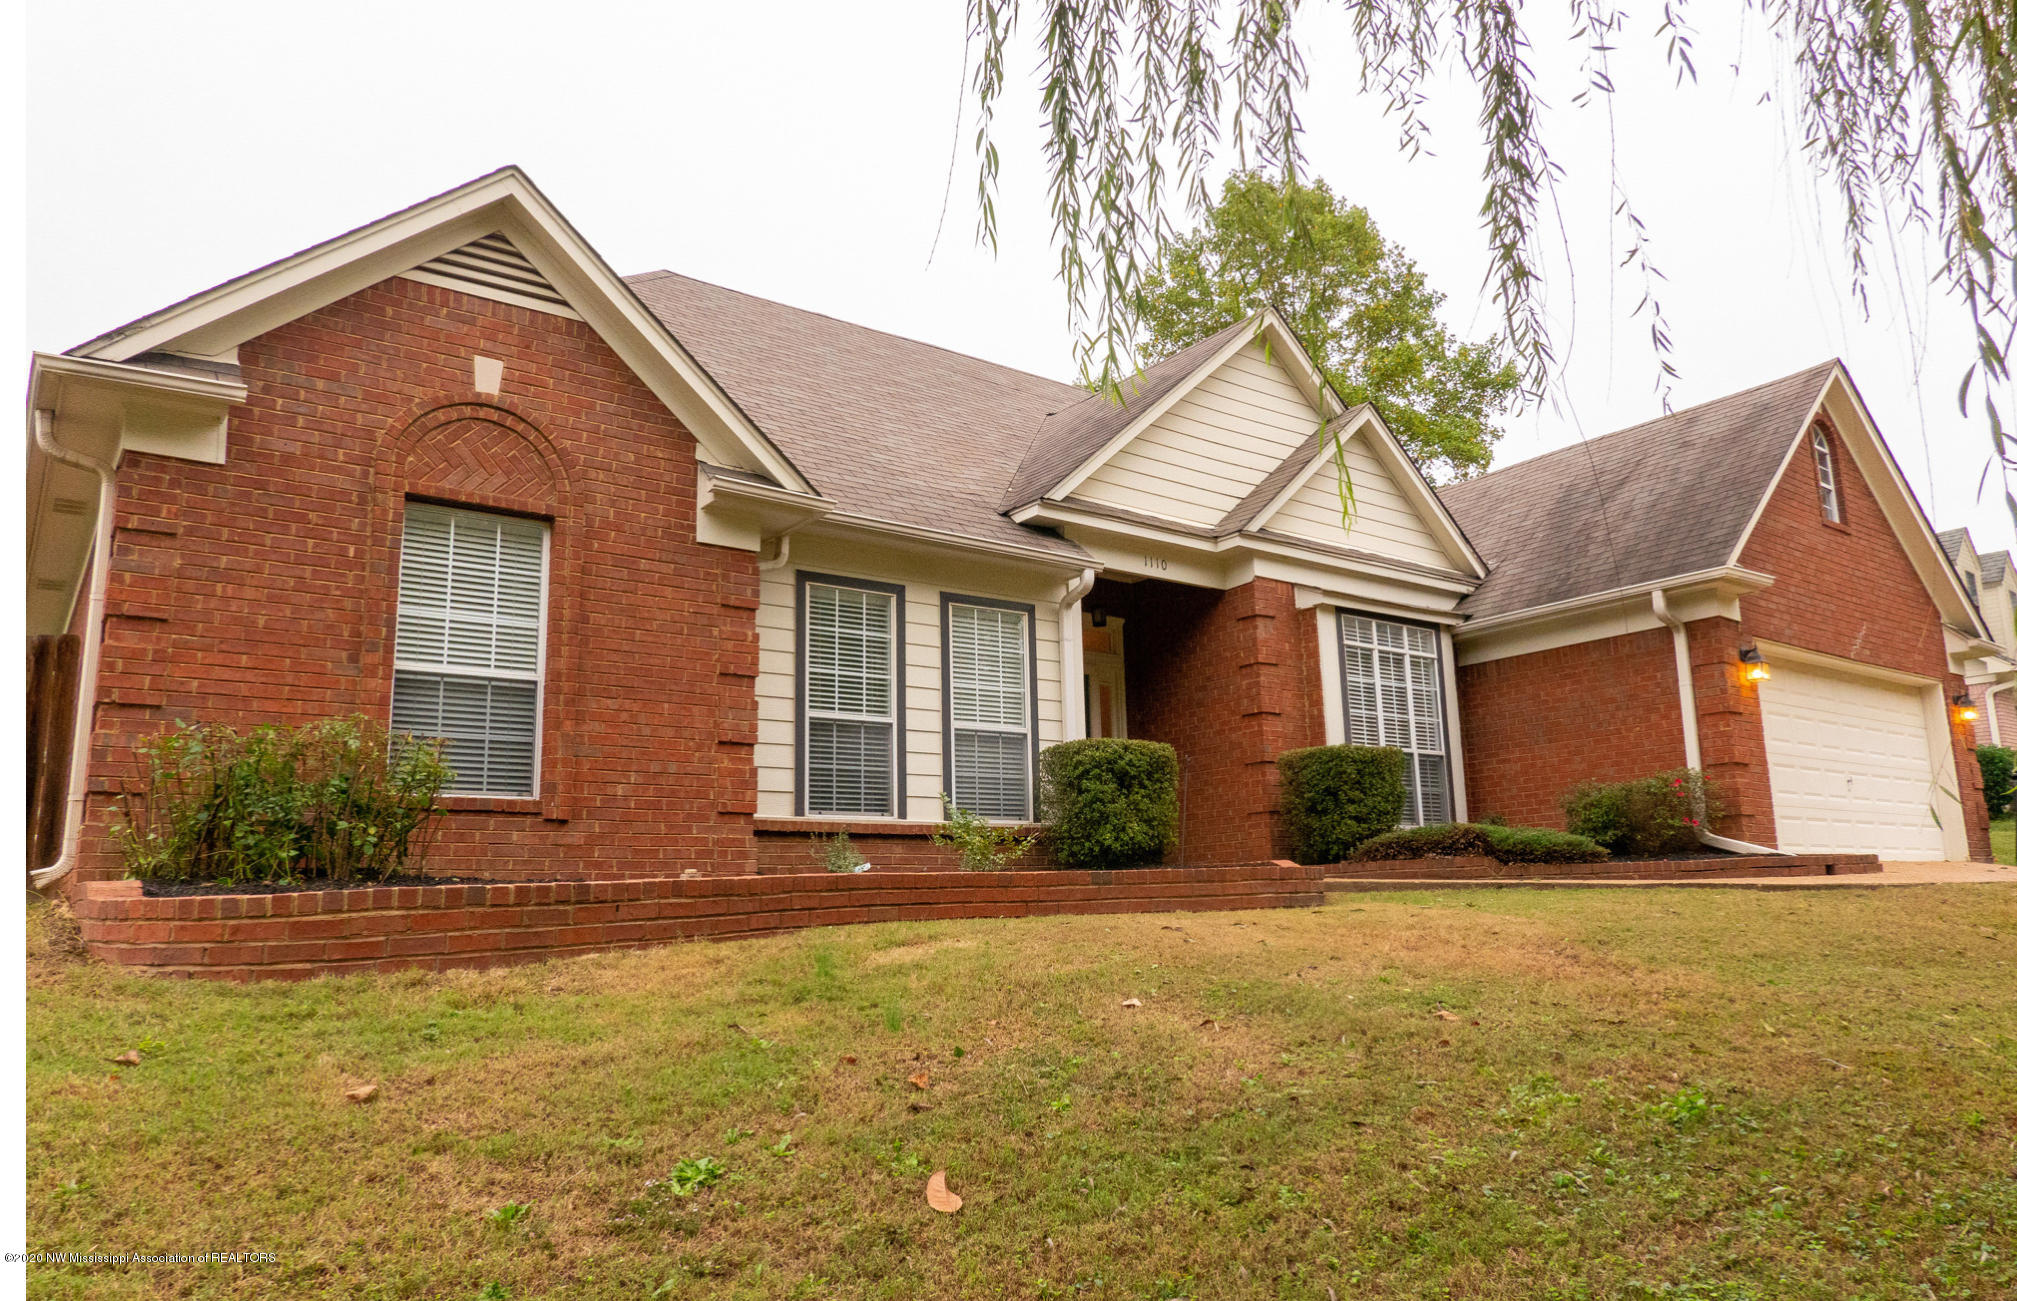 1110 Green T Boulevard, DeSoto, Mississippi 38632, 4 Bedrooms Bedrooms, ,3 BathroomsBathrooms,Residential,For Sale,Green T,332307